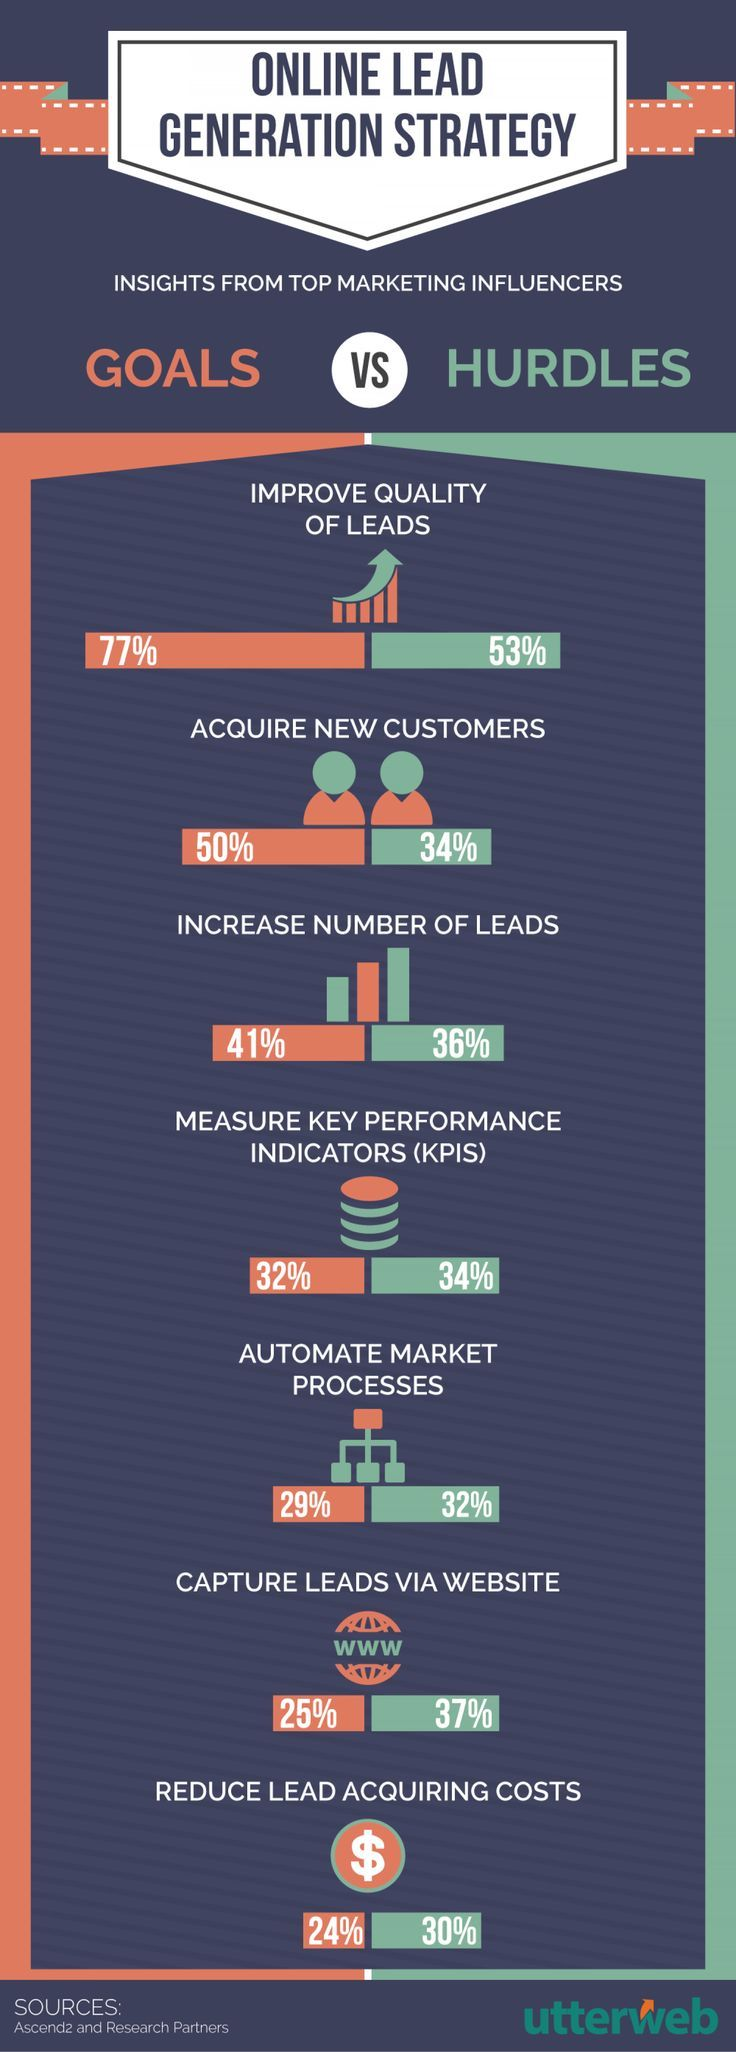 Online Lead Generation Strategy Infographic